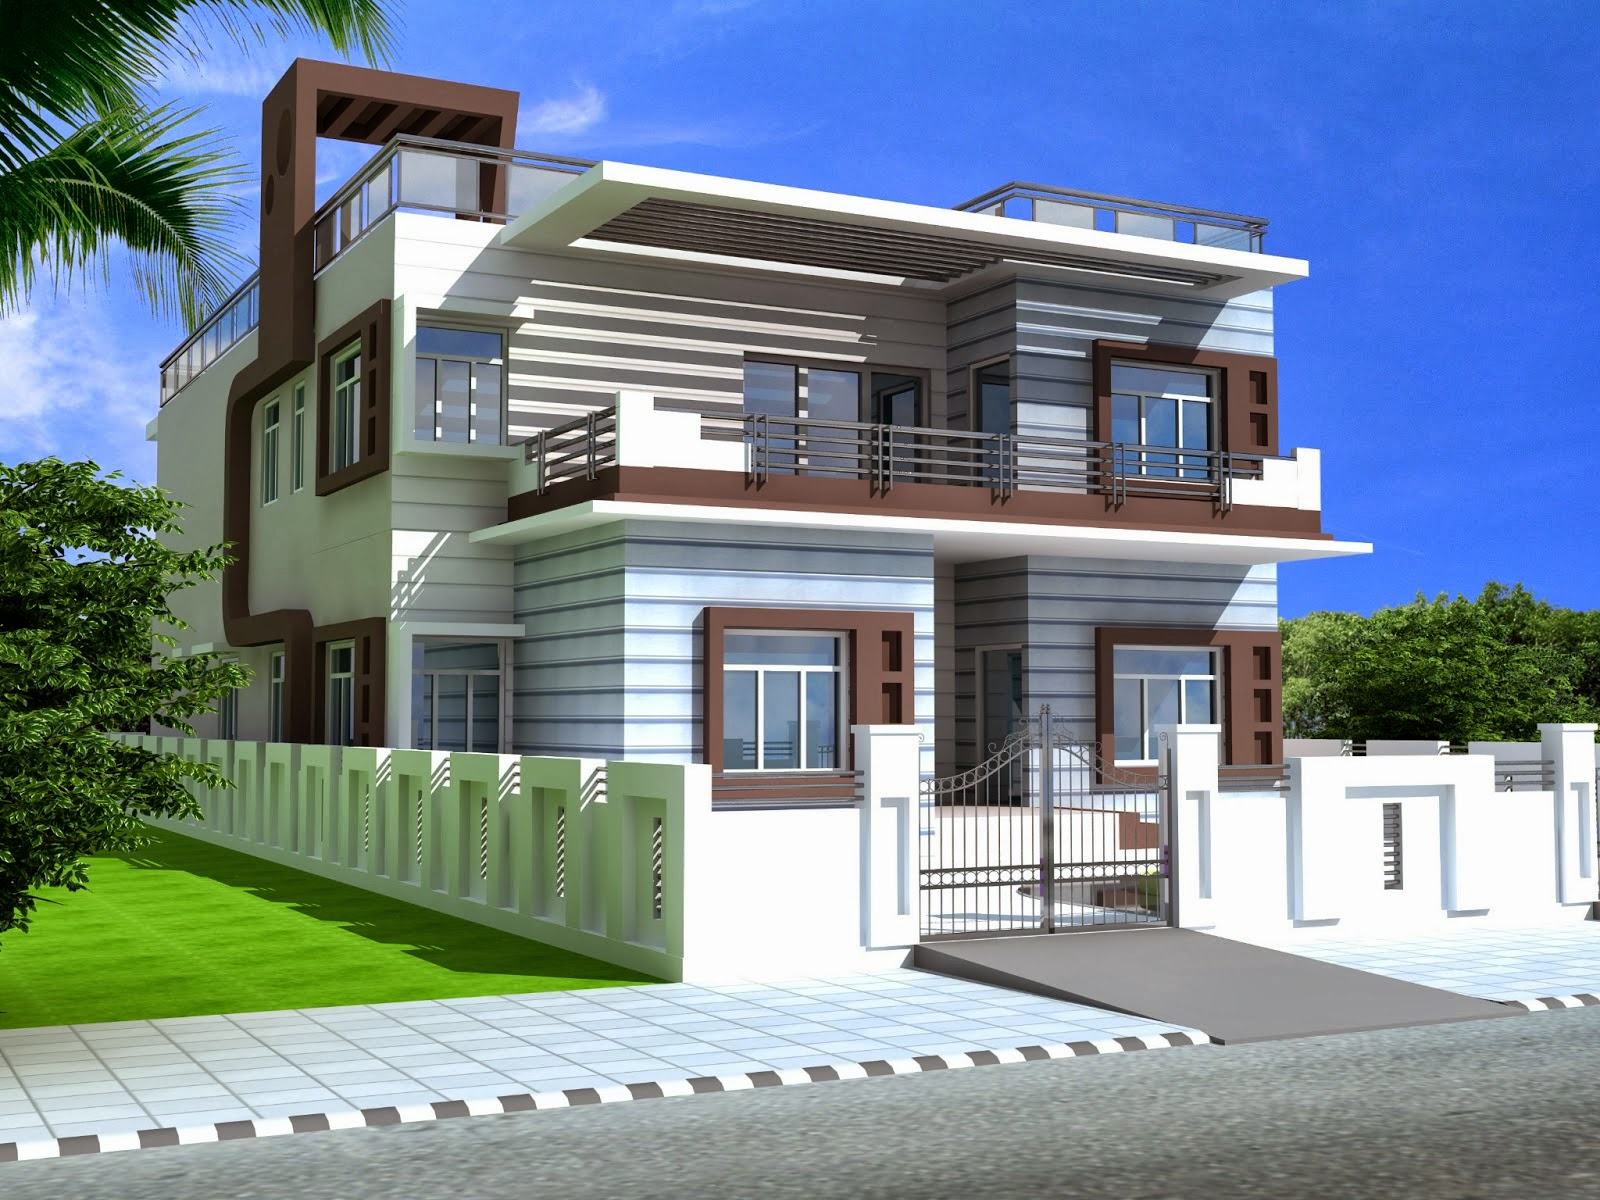 Foundation dezin decor duplex homes 3ds max work for New duplex designs